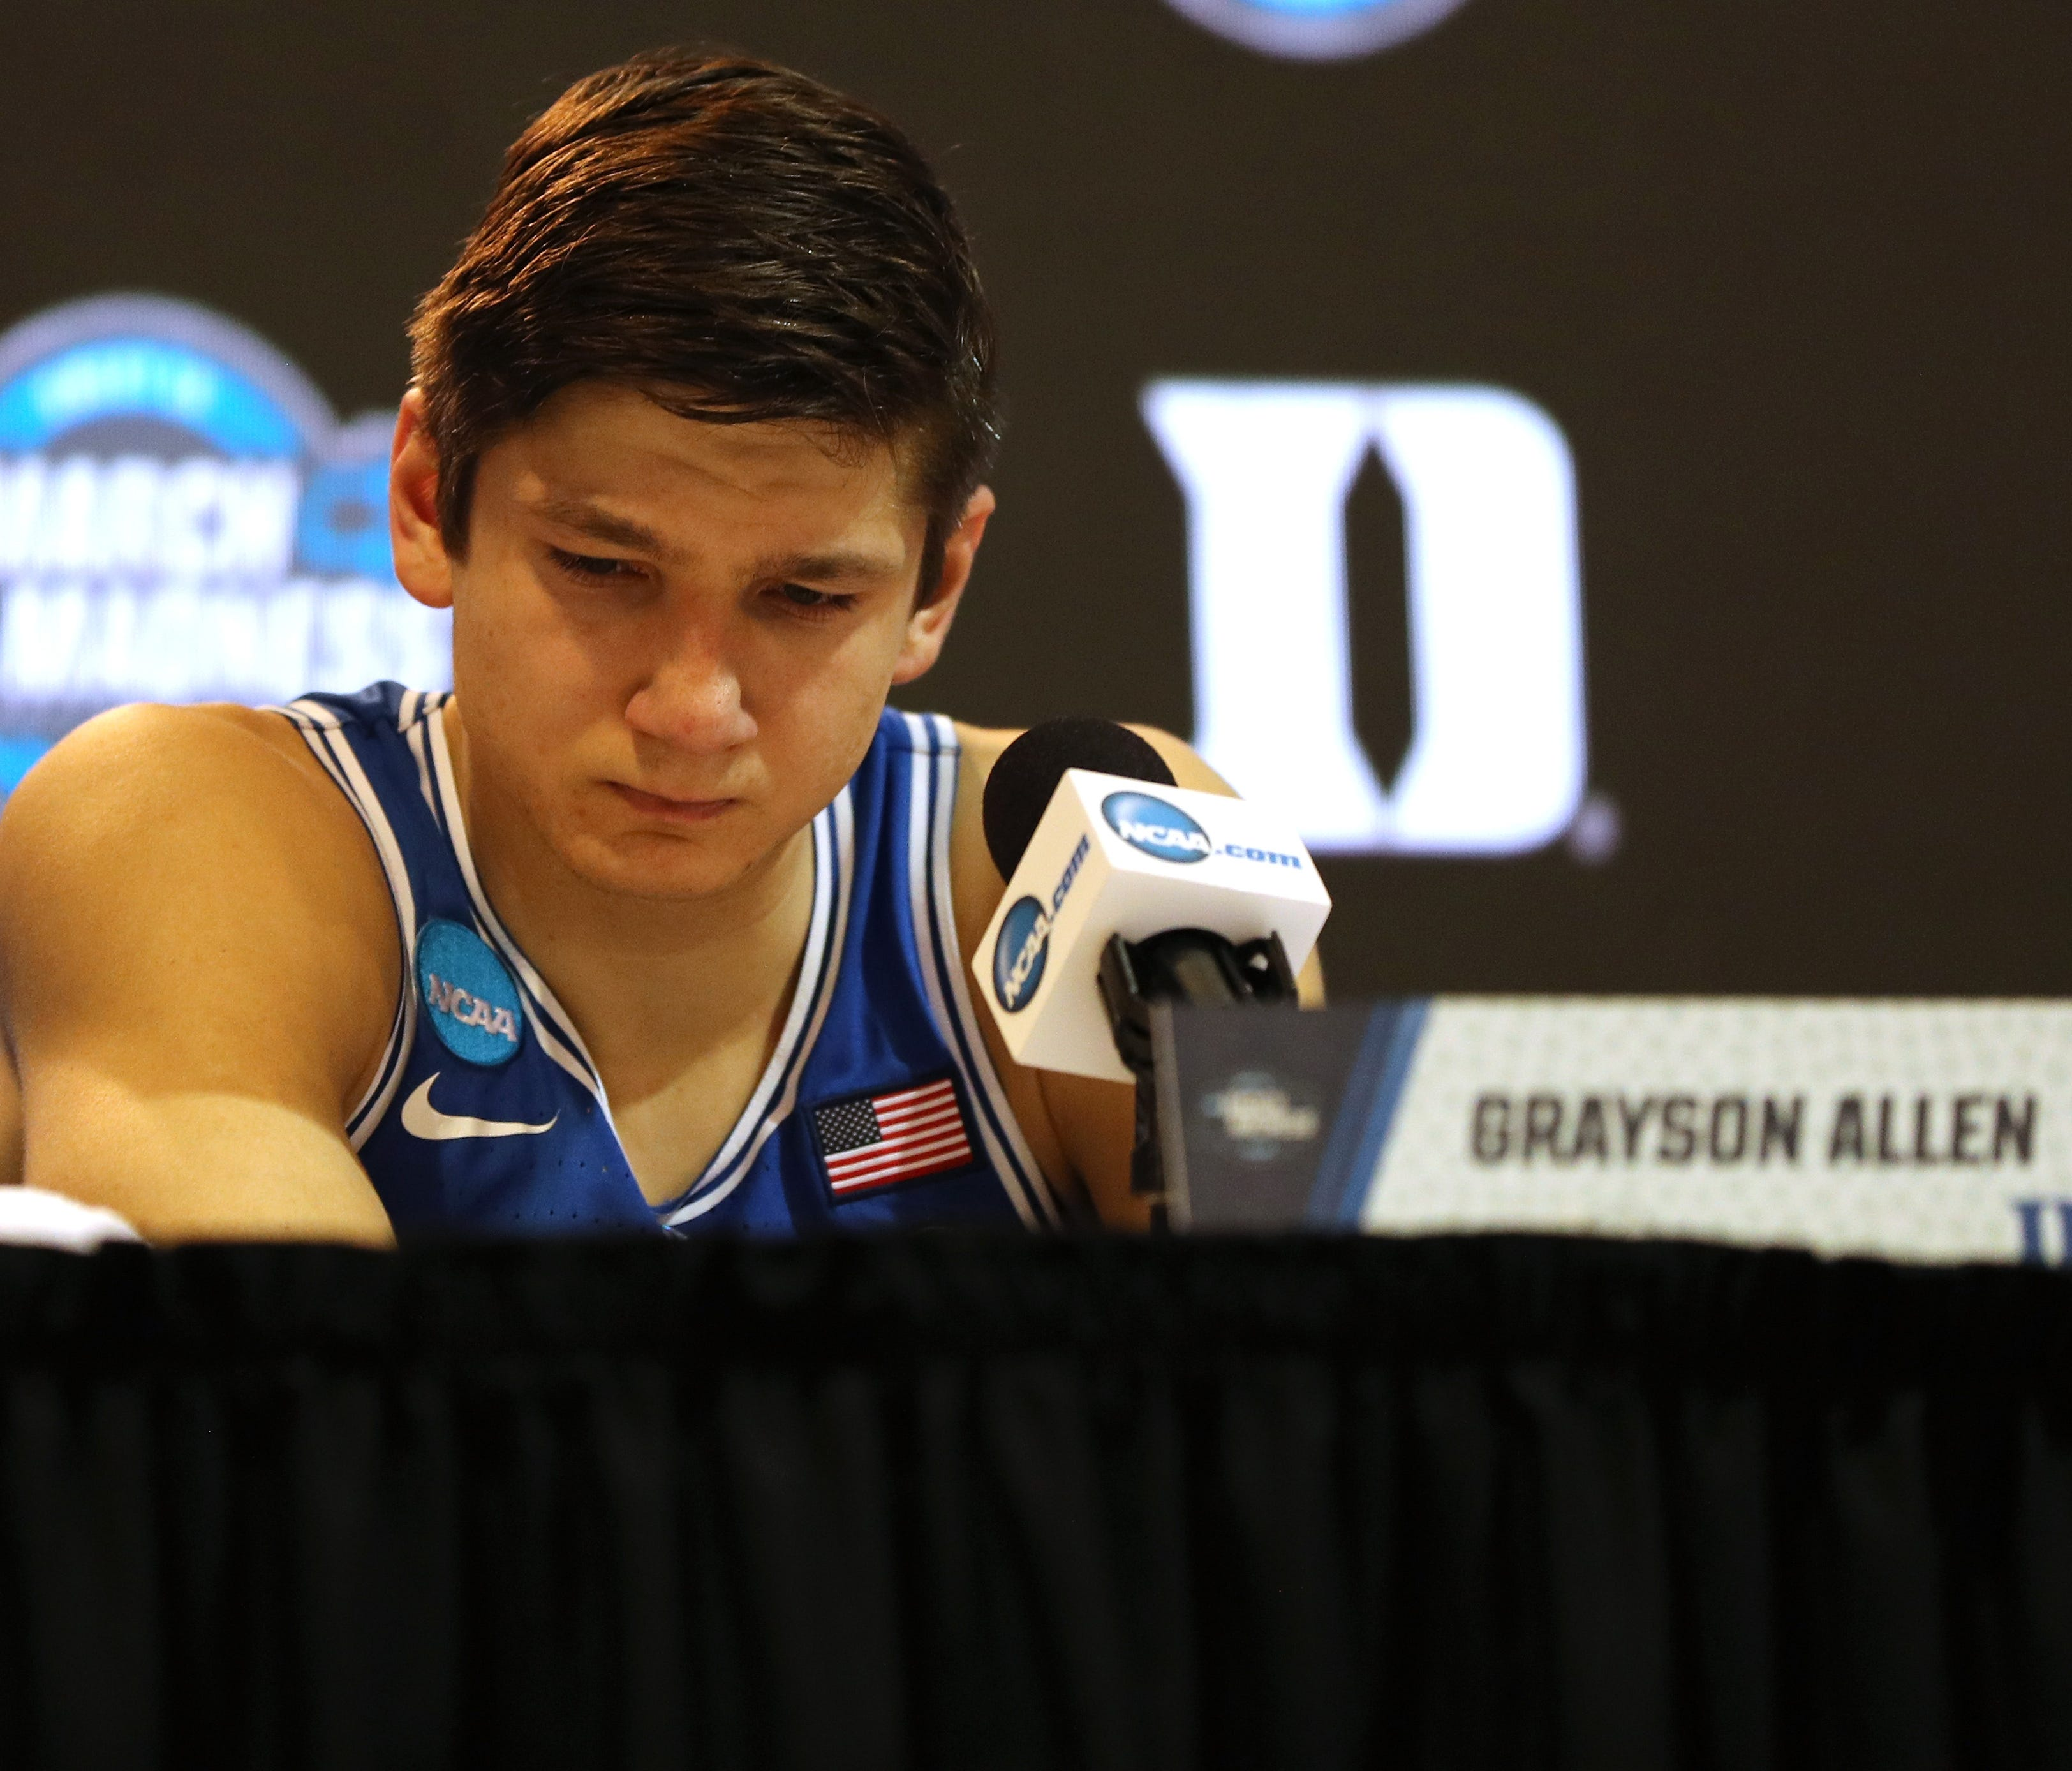 A sad Duke guard Grayson Allen reflects on the end of his career following the Blue Devils' season-ending loss to Kansas in the Elite Eight.